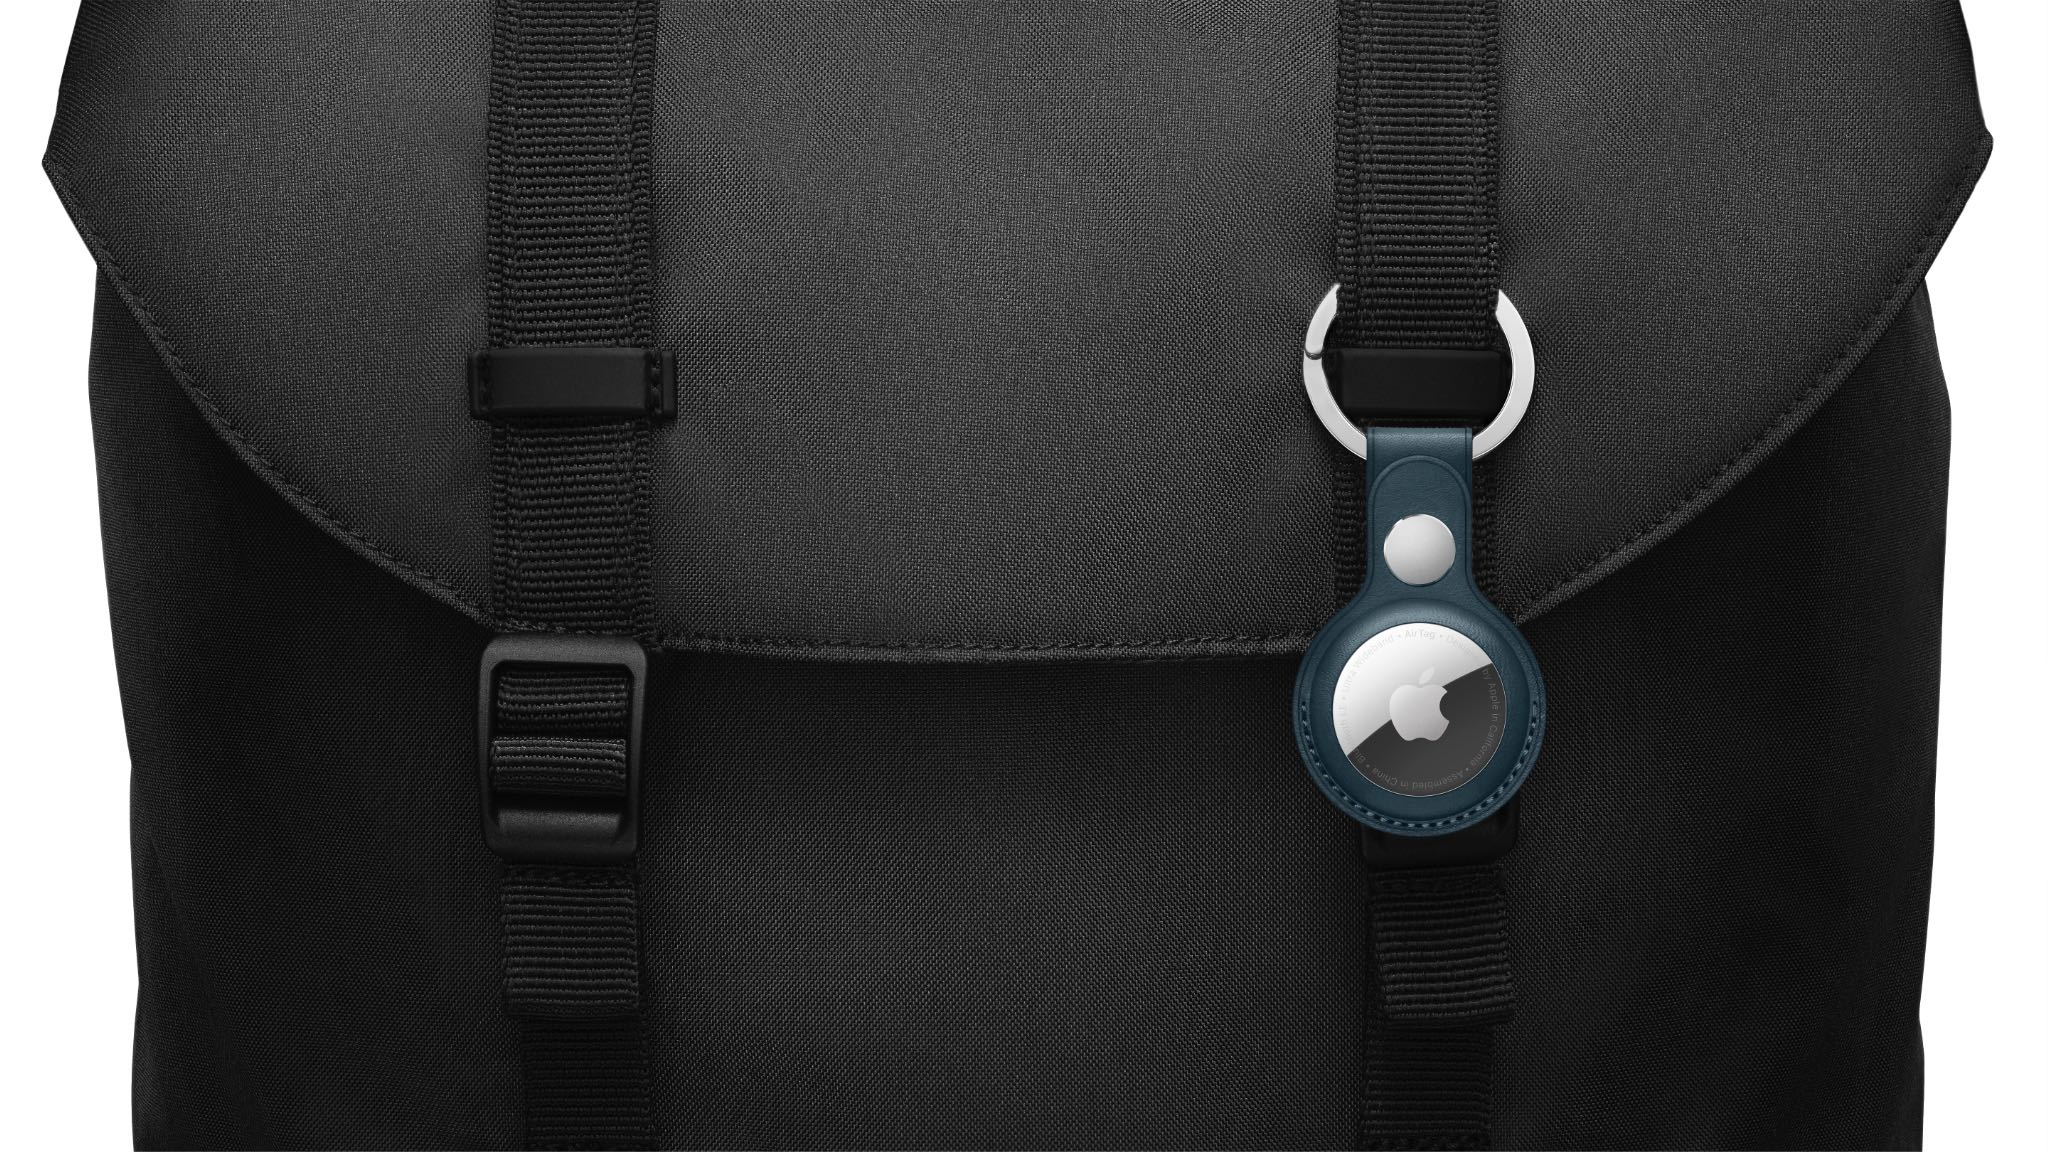 A photograph showing an Apple AirTag item tracker attached to a carrying bag